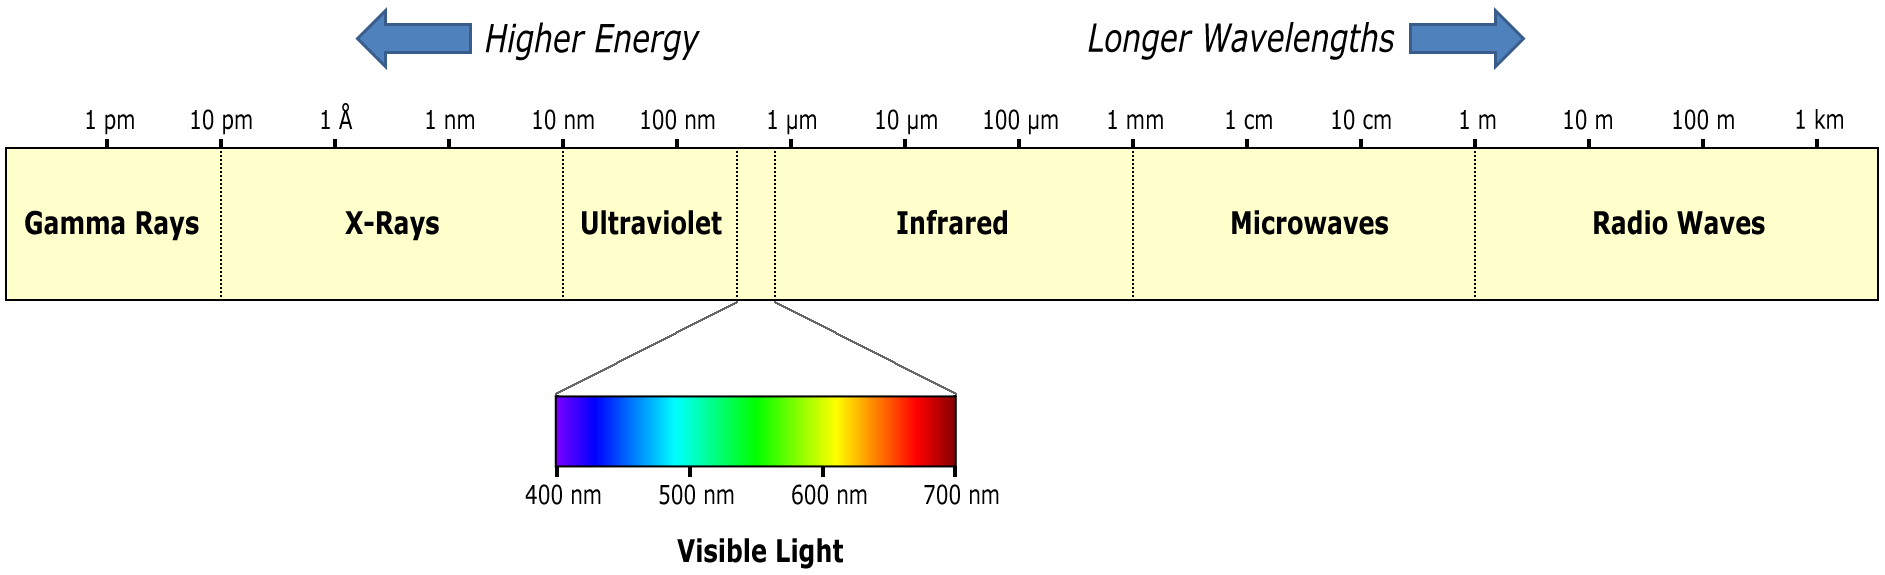 How Do Greenhouse Gases Trap The Earths Heat Philipendium Diagram Showing Energy Transfer By Radiation Infrared Is However Light Can Exist In A Wide Range Of Wavelengths From Gamma Rays To Radio Waves And Only Limited Subset These Visible